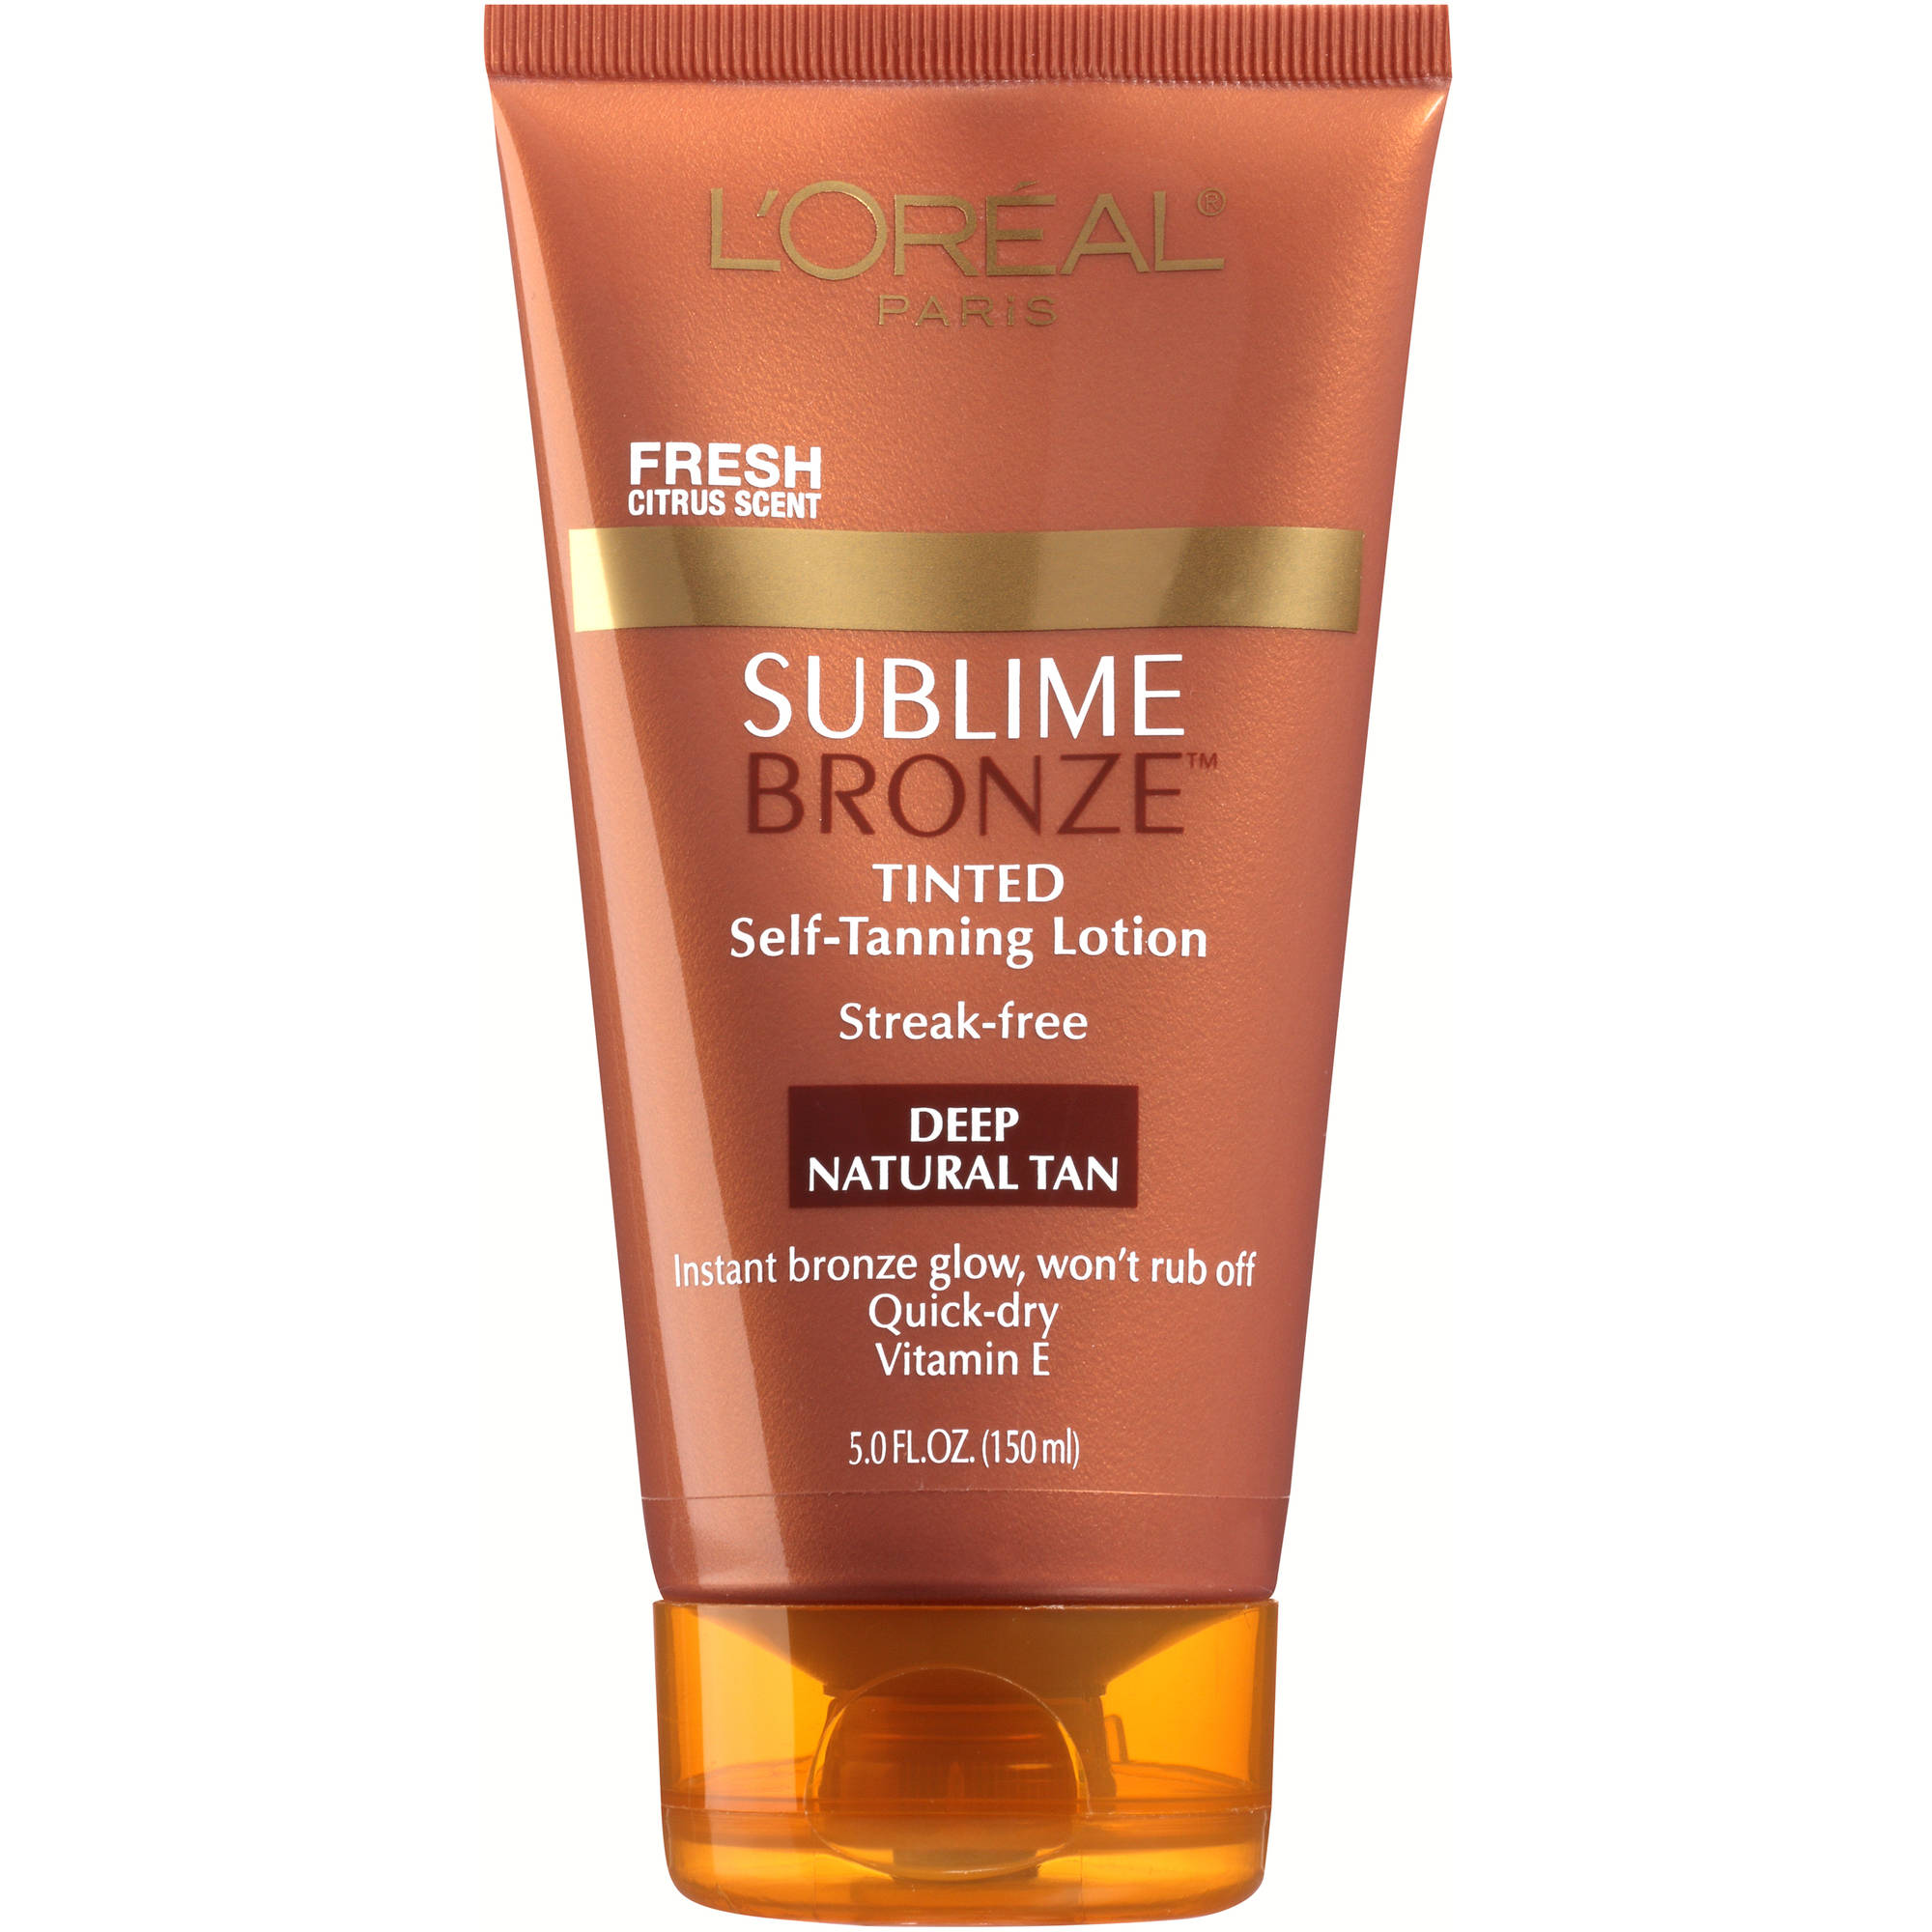 L'Oreal® Paris   Sublime Bronze™ Tinted Self-Tanning Lotion Deep Natural Tan, 5 fl oz